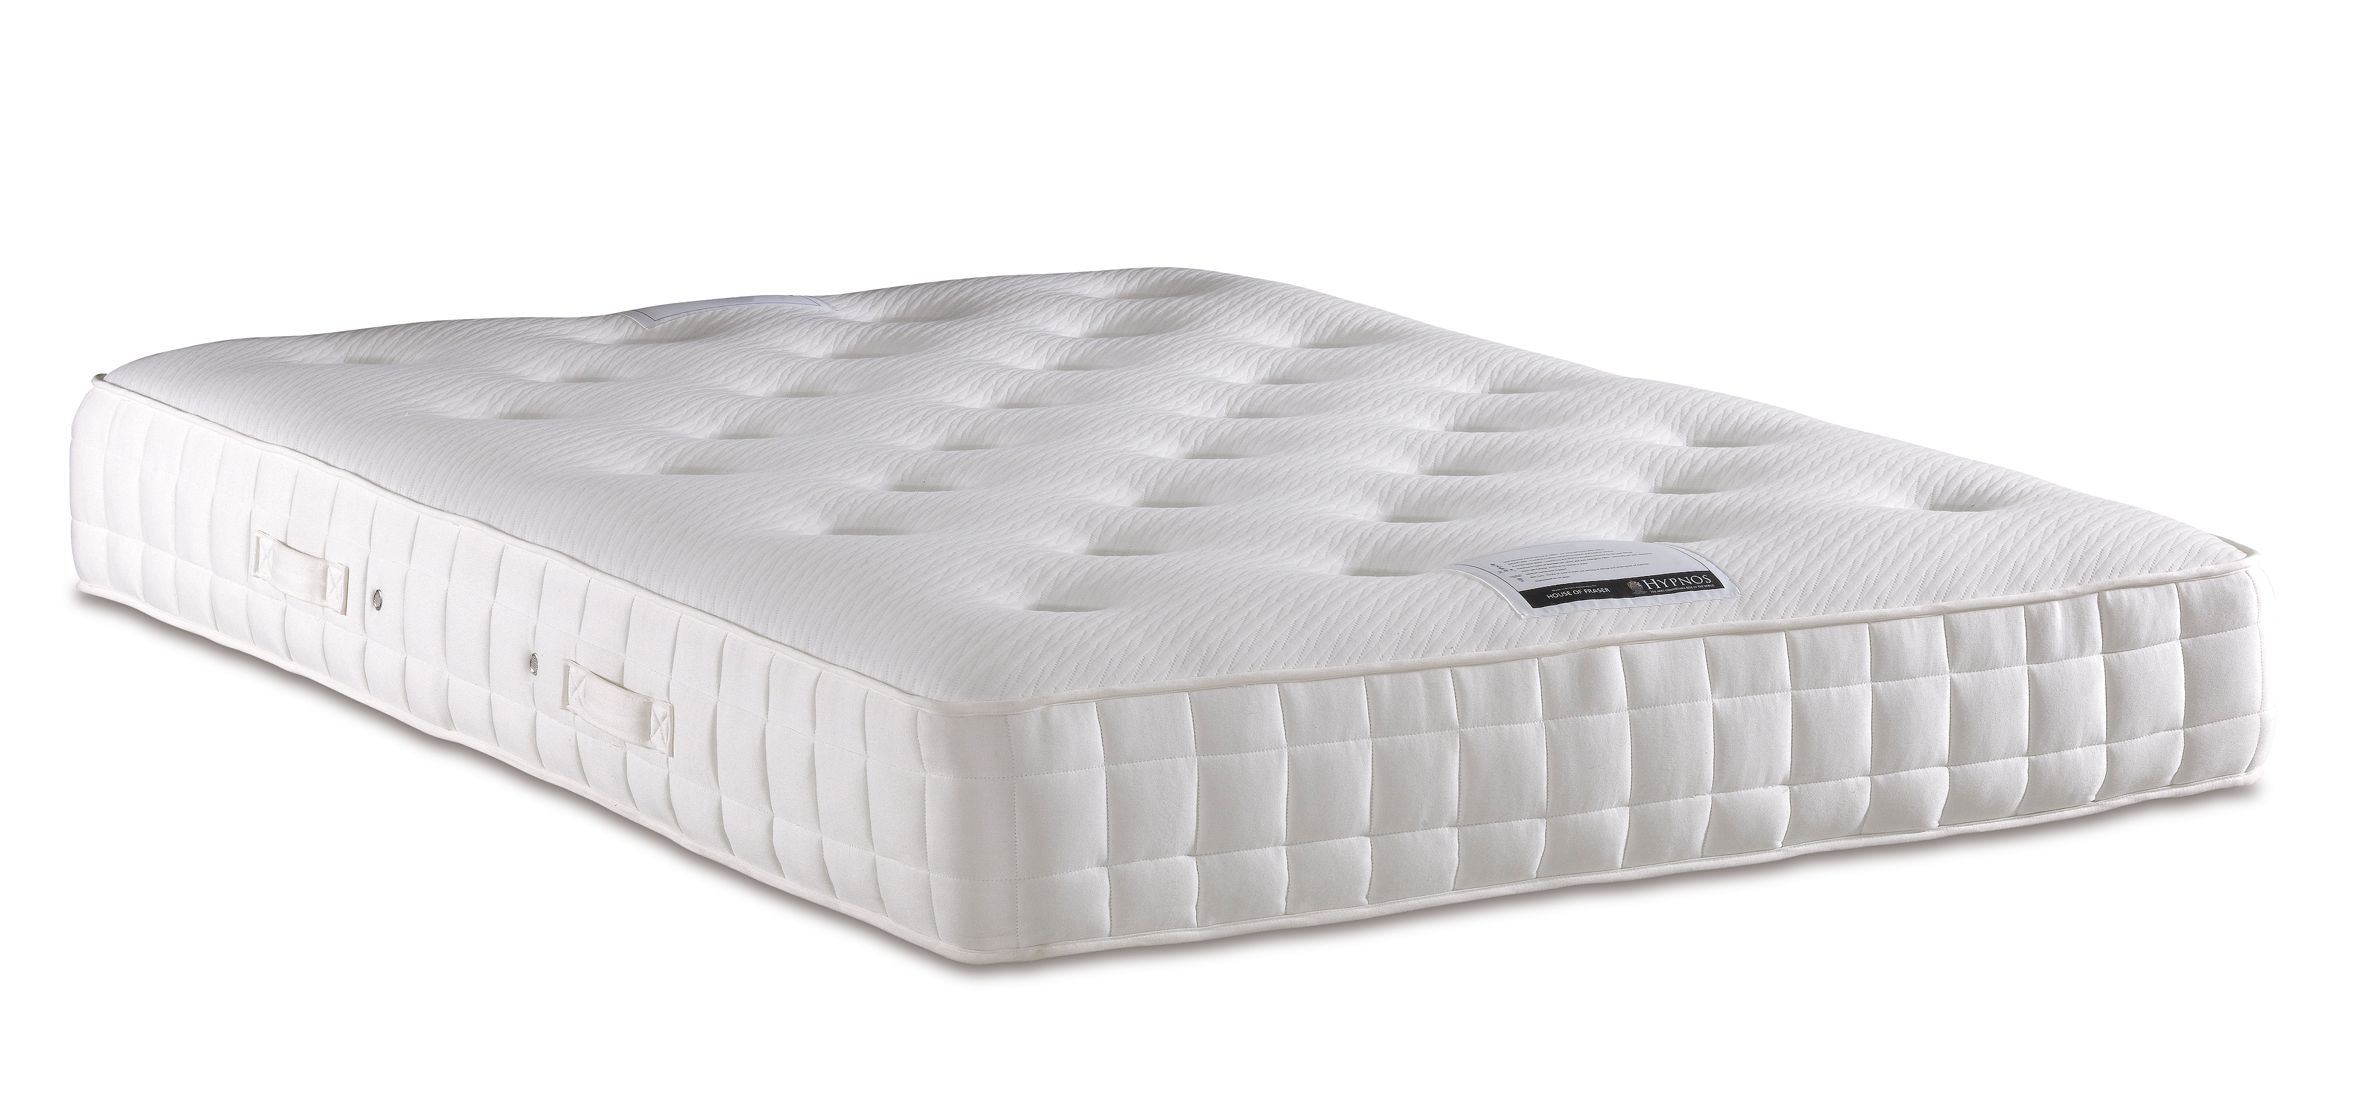 Marchesa Mattress Range